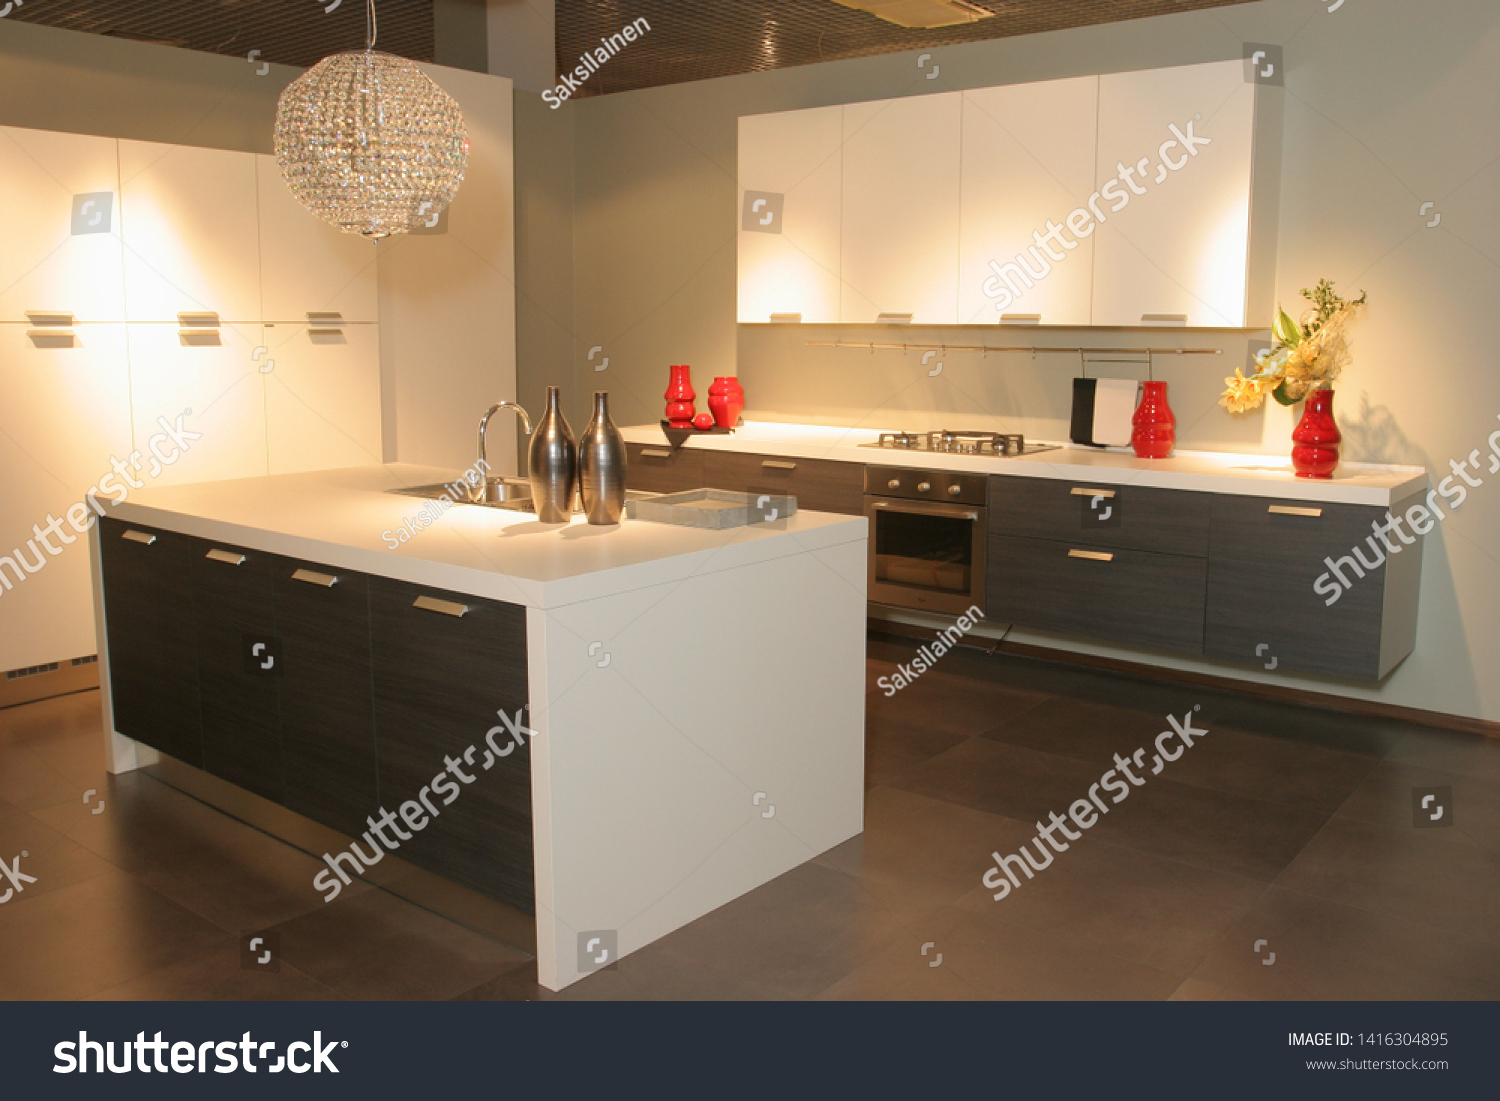 Kitchen furniture. Kitchen. Furniture exhibition. Furniture store #1416304895